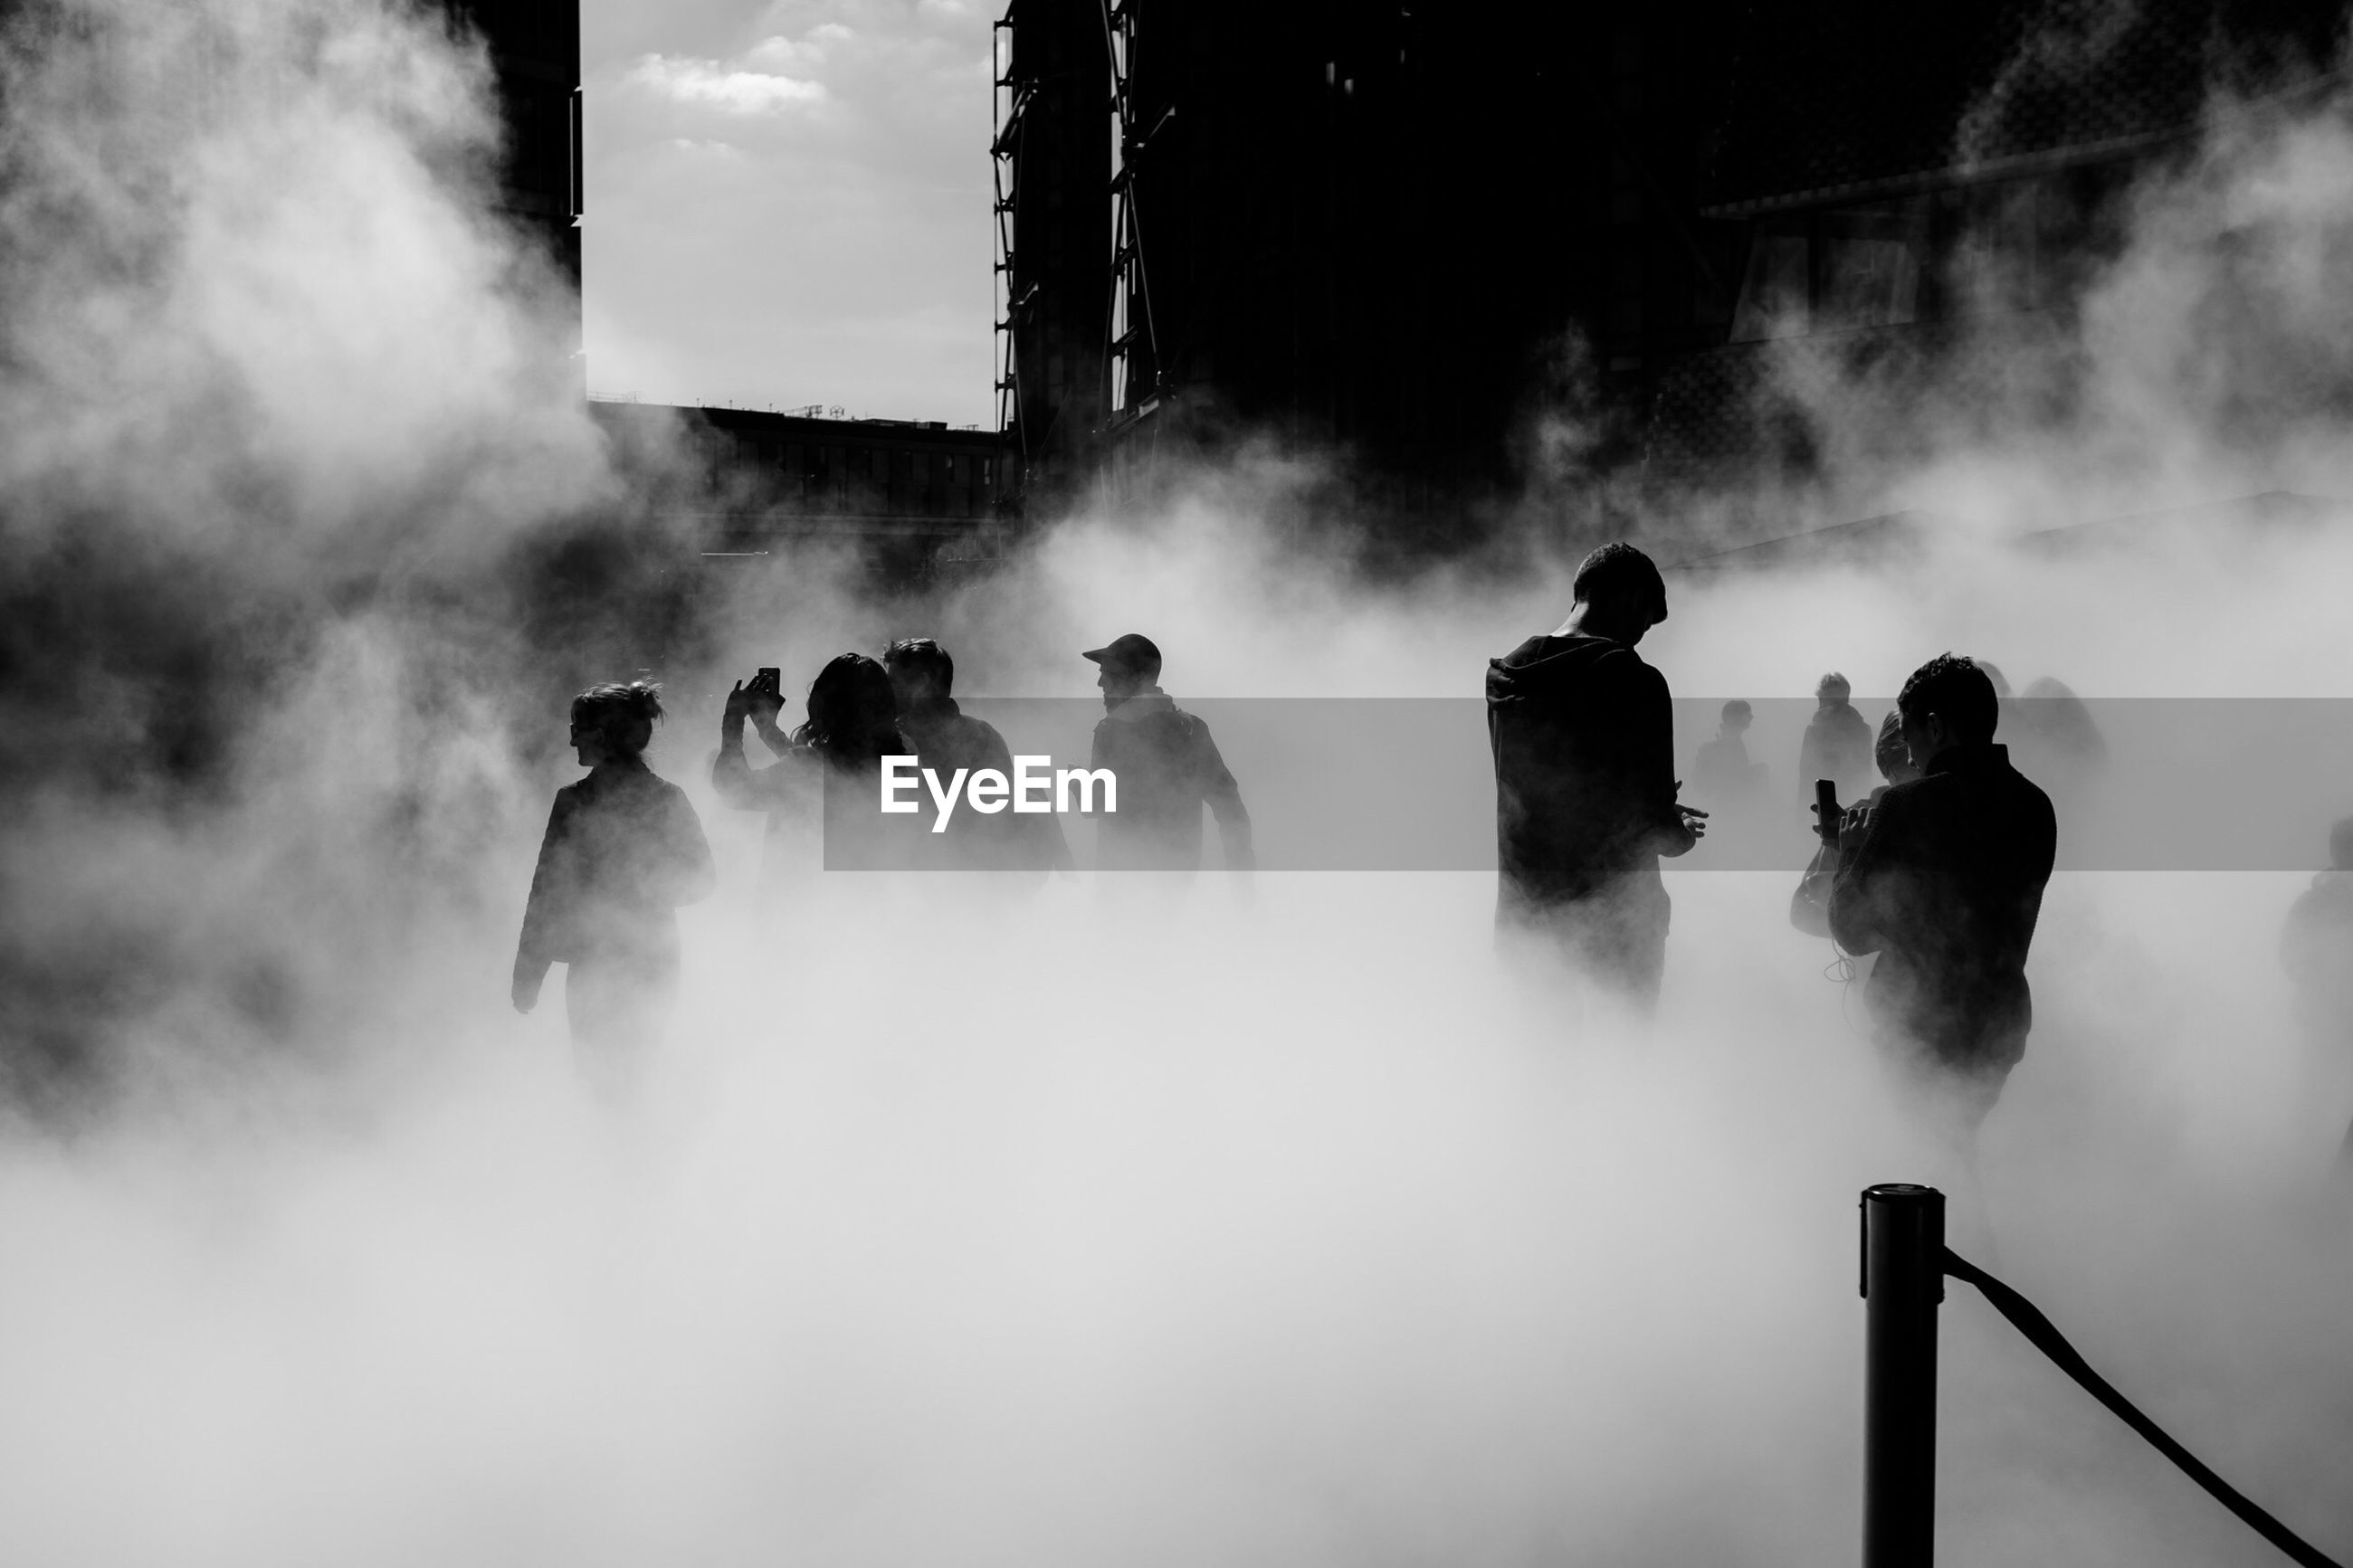 People surrounded by smoke